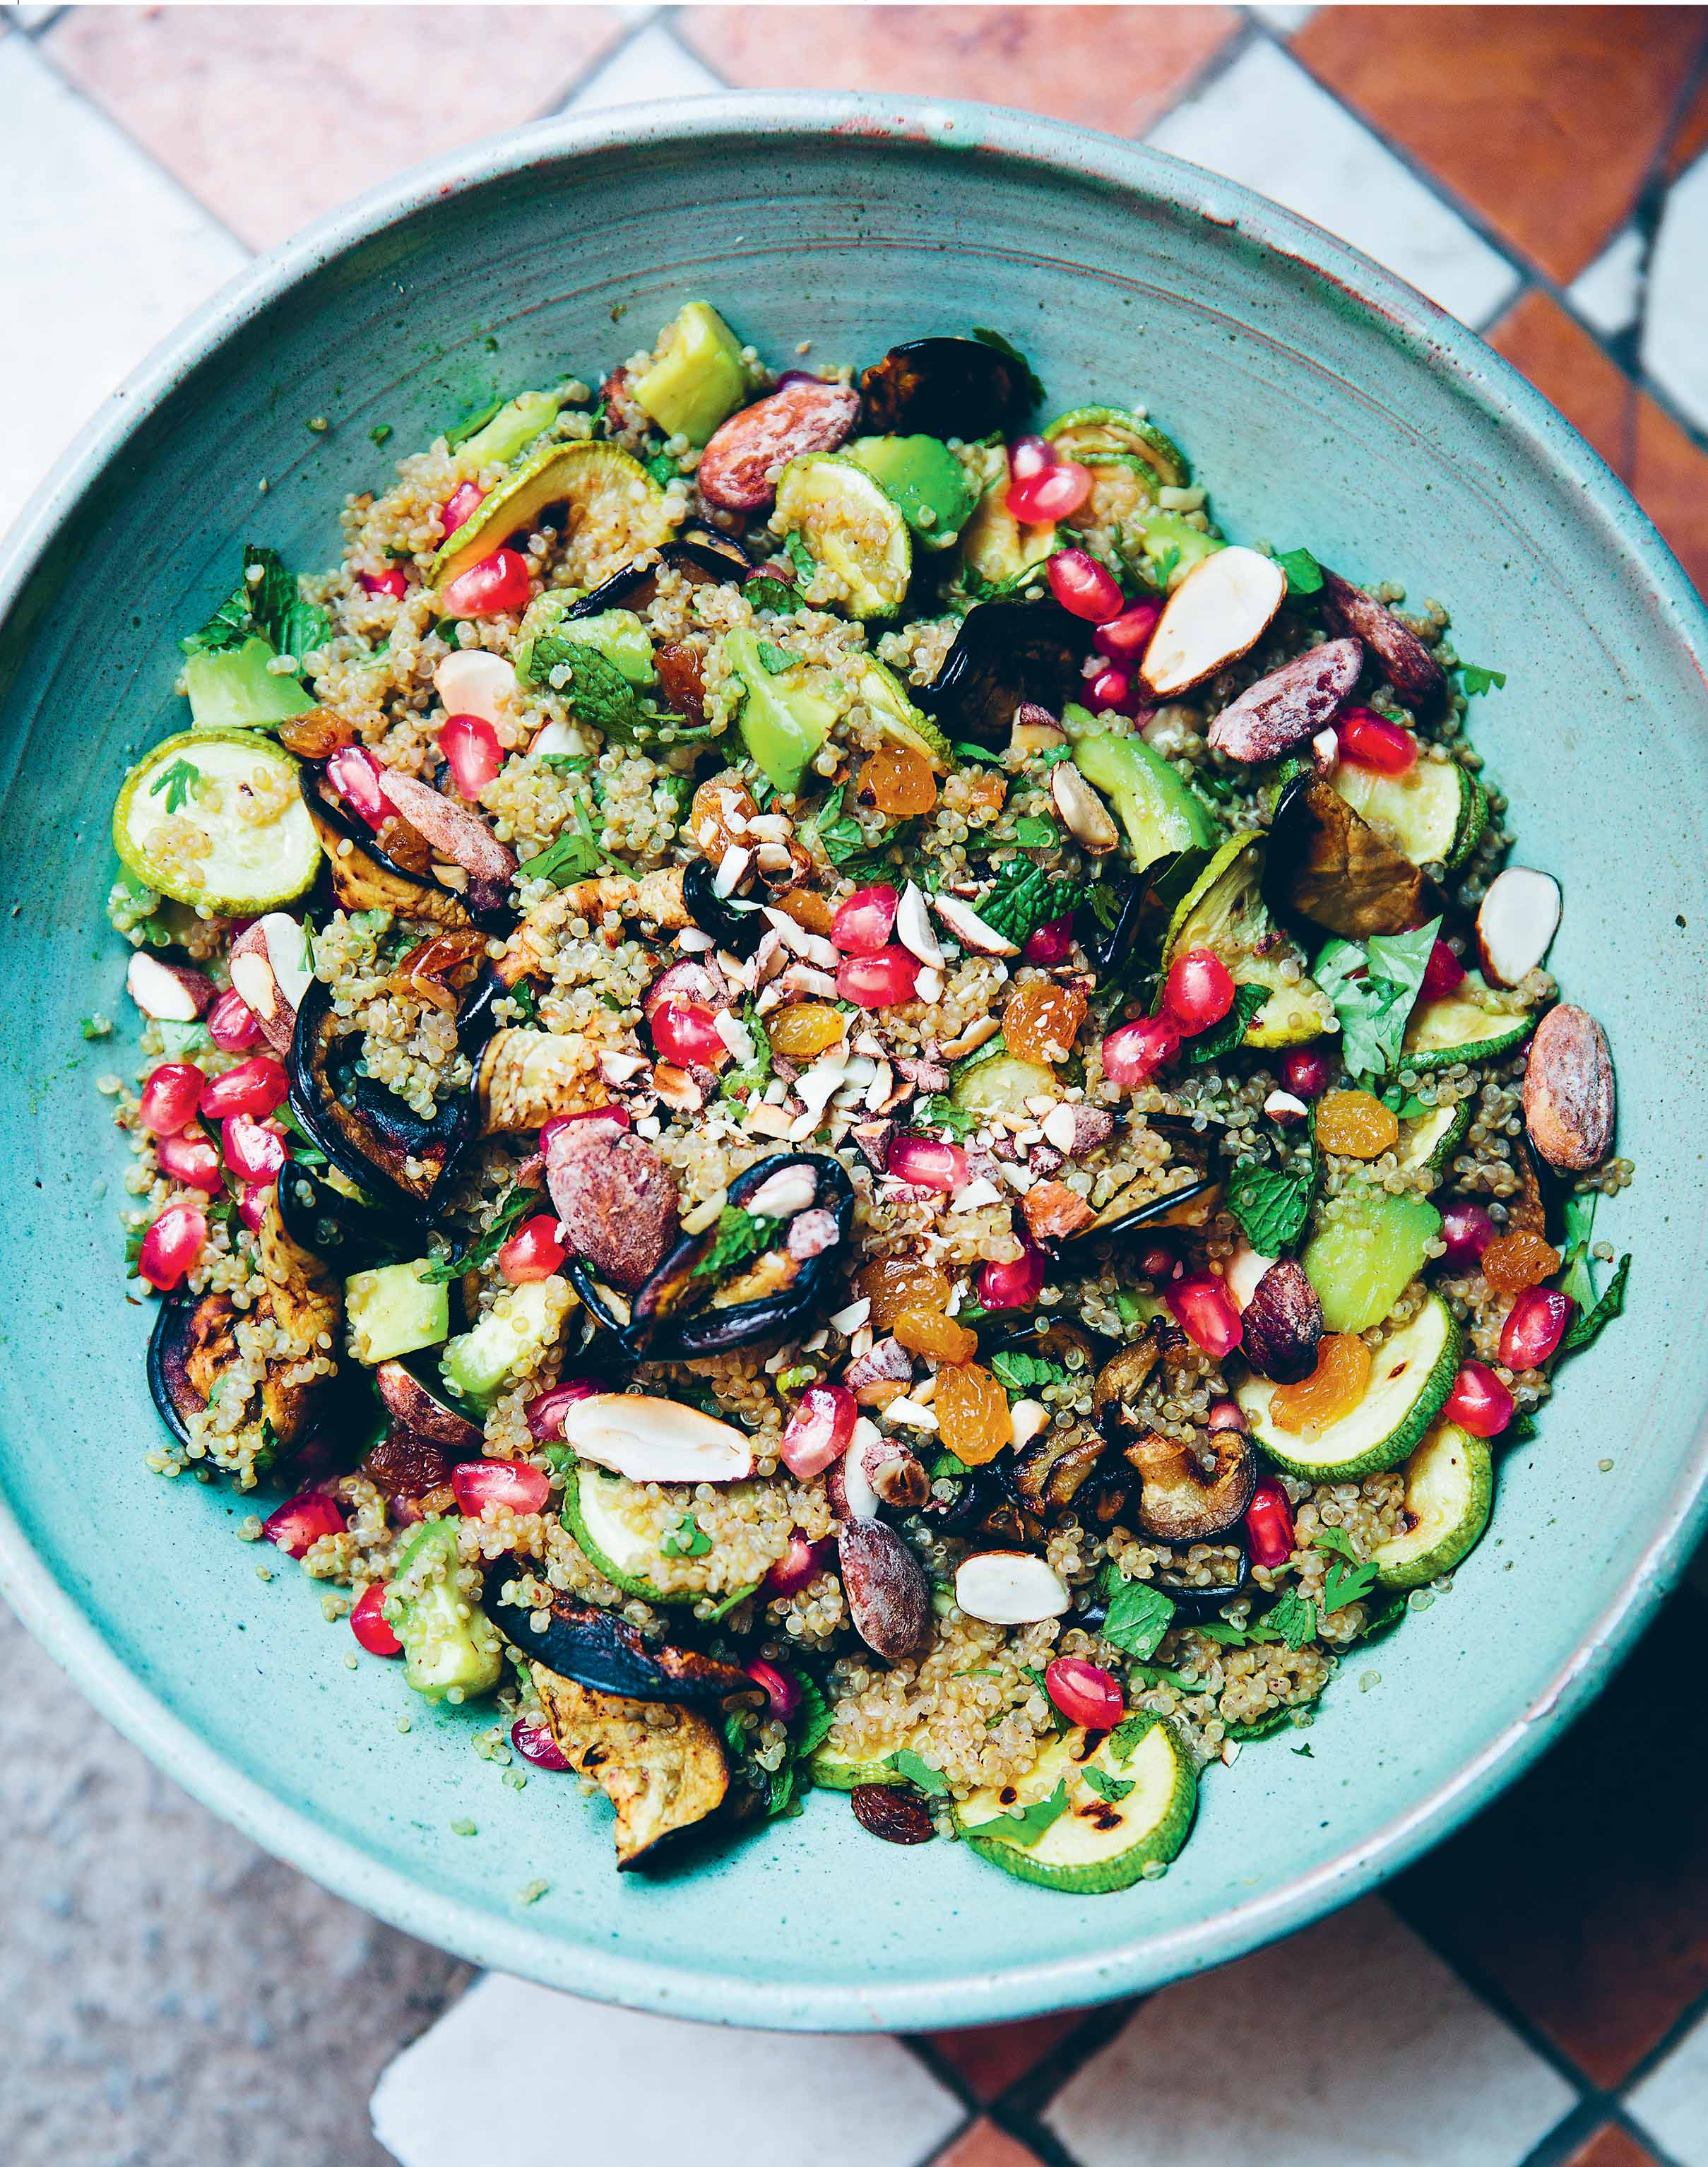 Quinoa, almond and mint salad